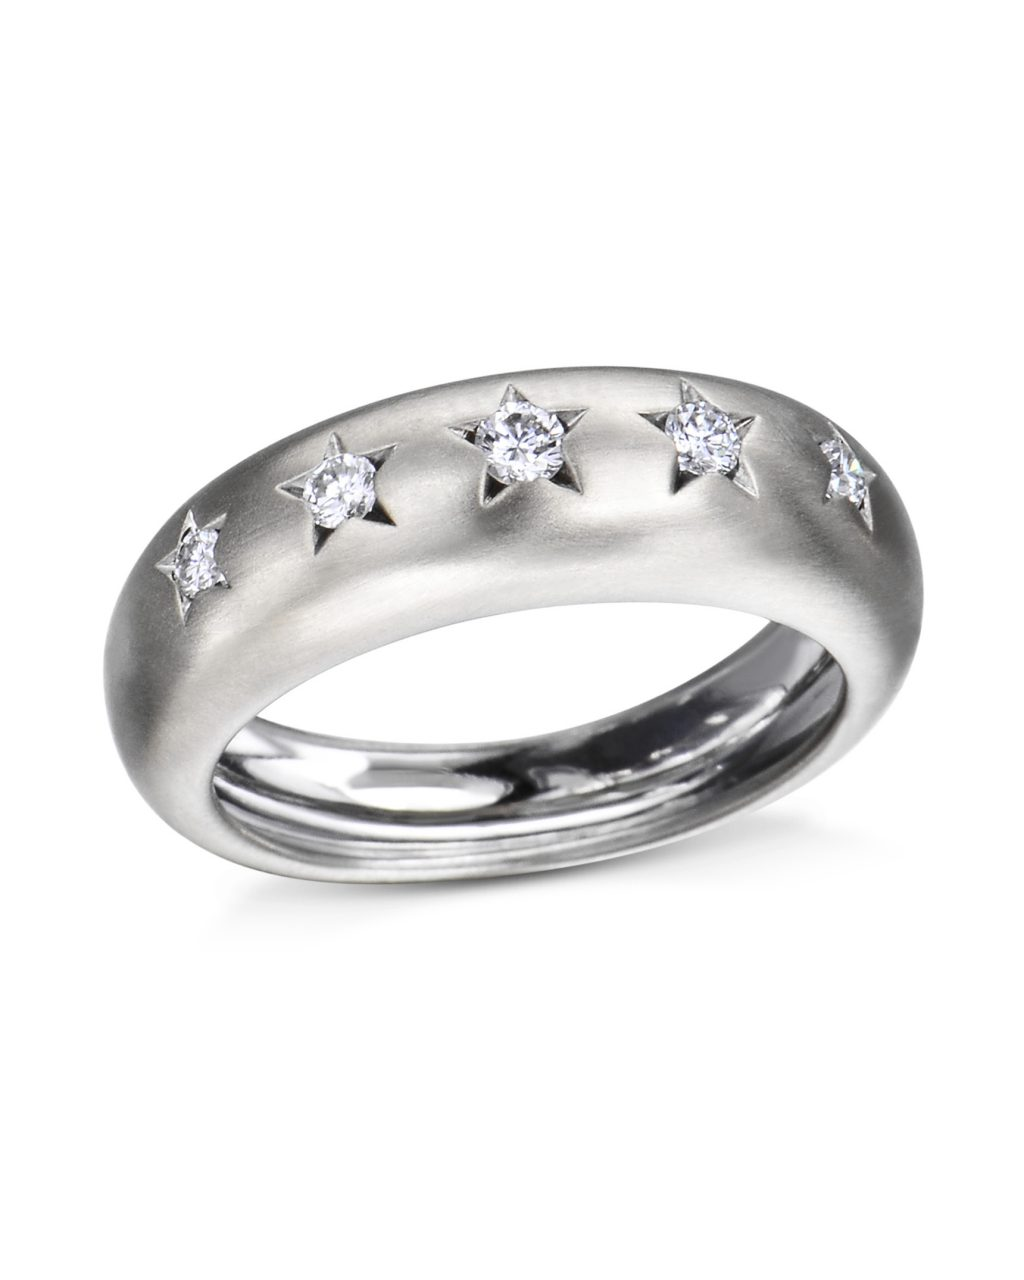 Star Design Diamond Wedding Band